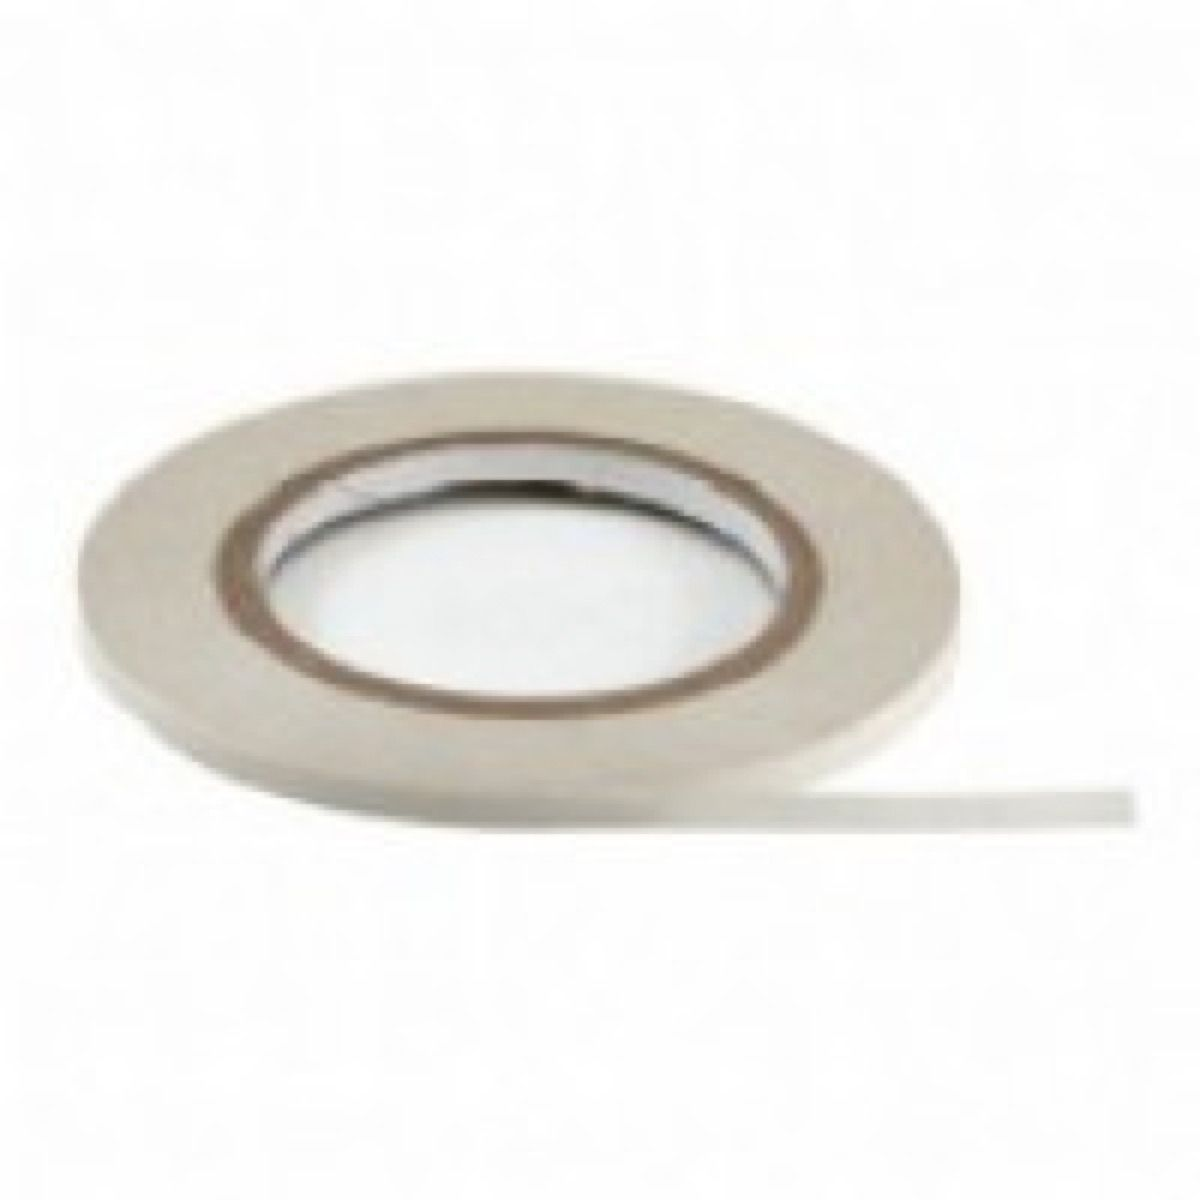 25m Roll Of Double Sided Sticky Tape - 6mm Wide